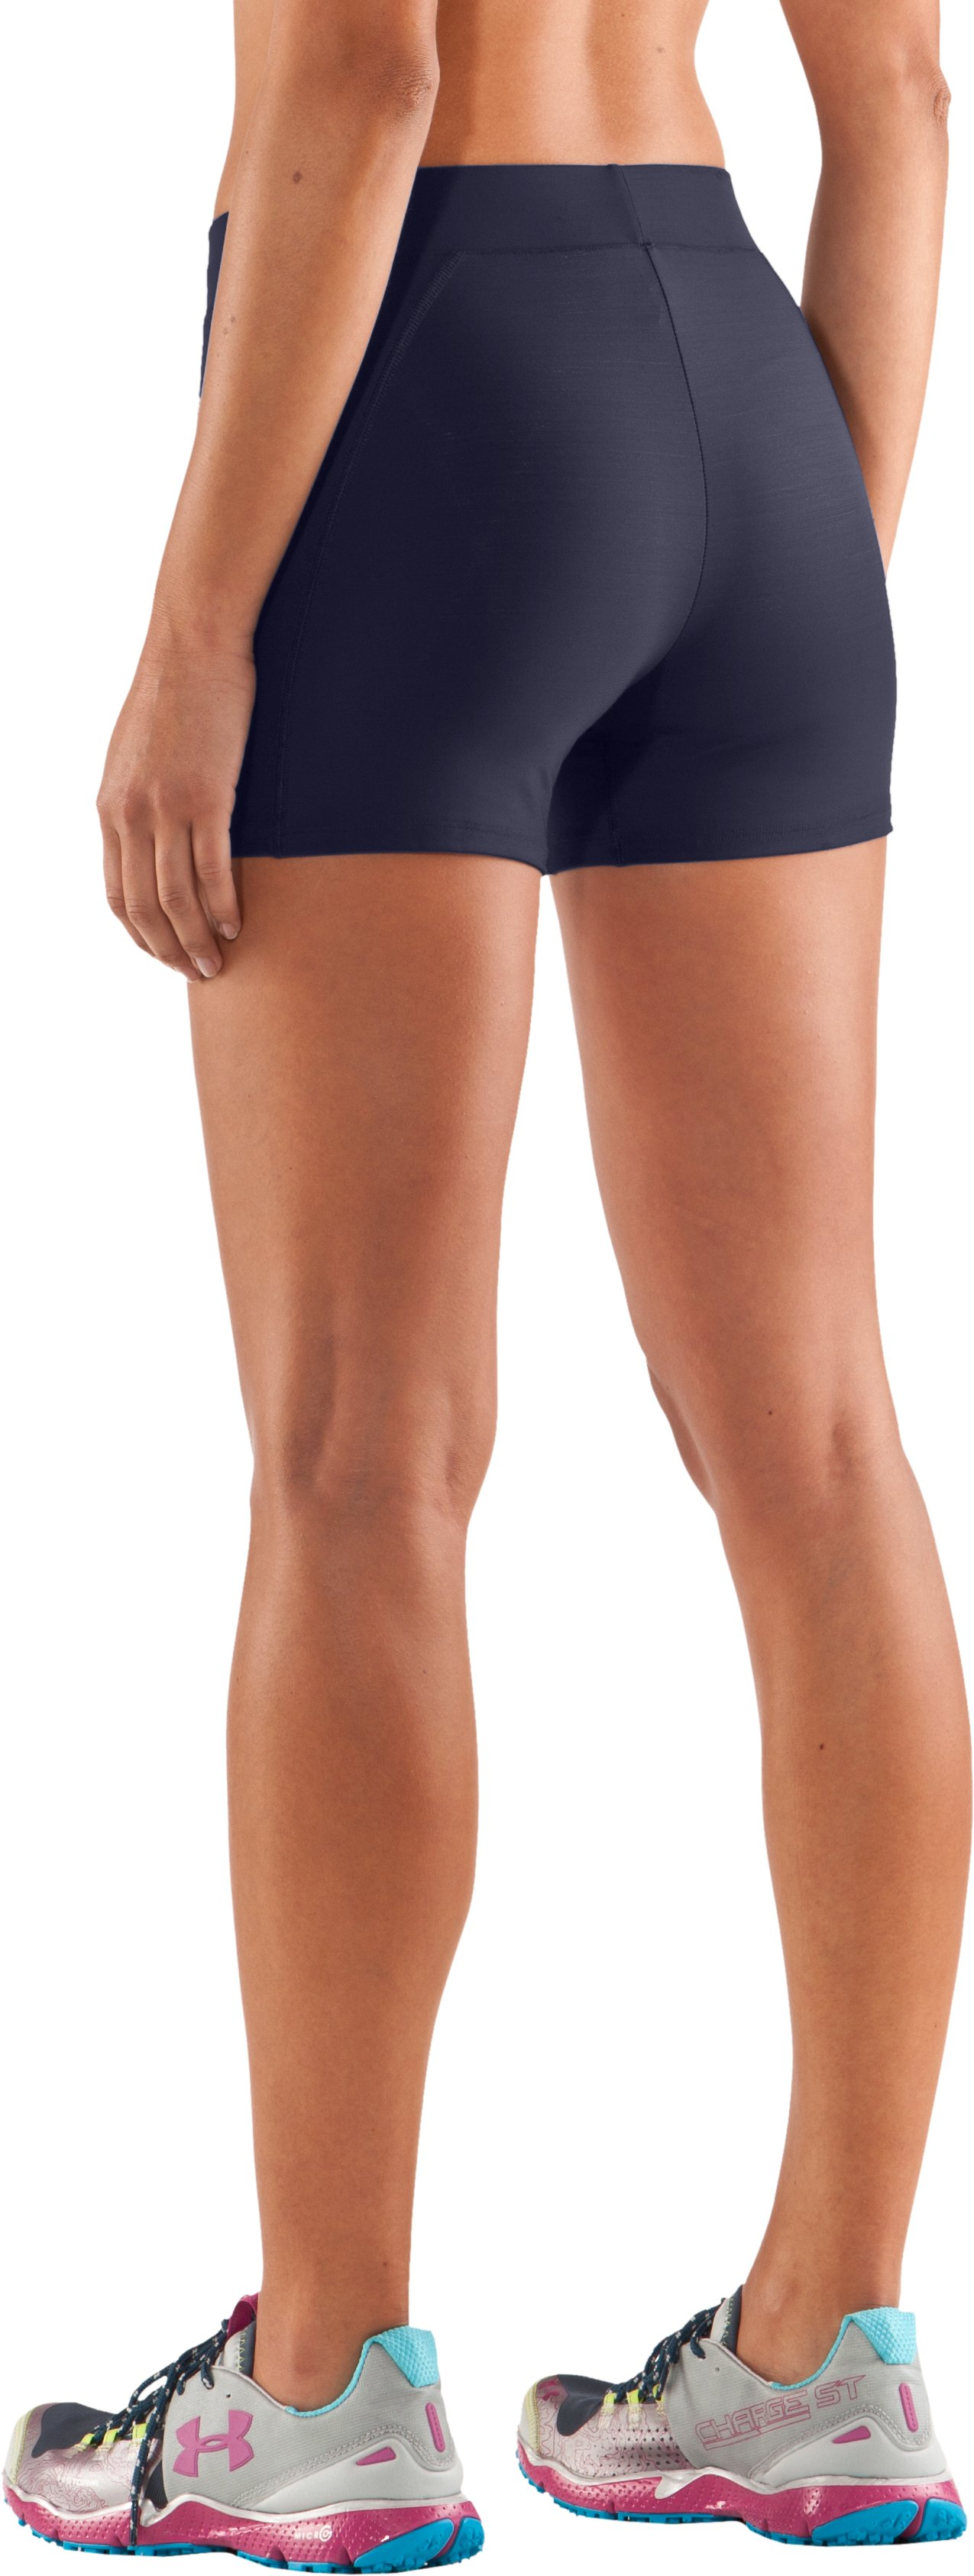 "Women's Ultra 2"" Compression Shorts, Midnight Navy,"